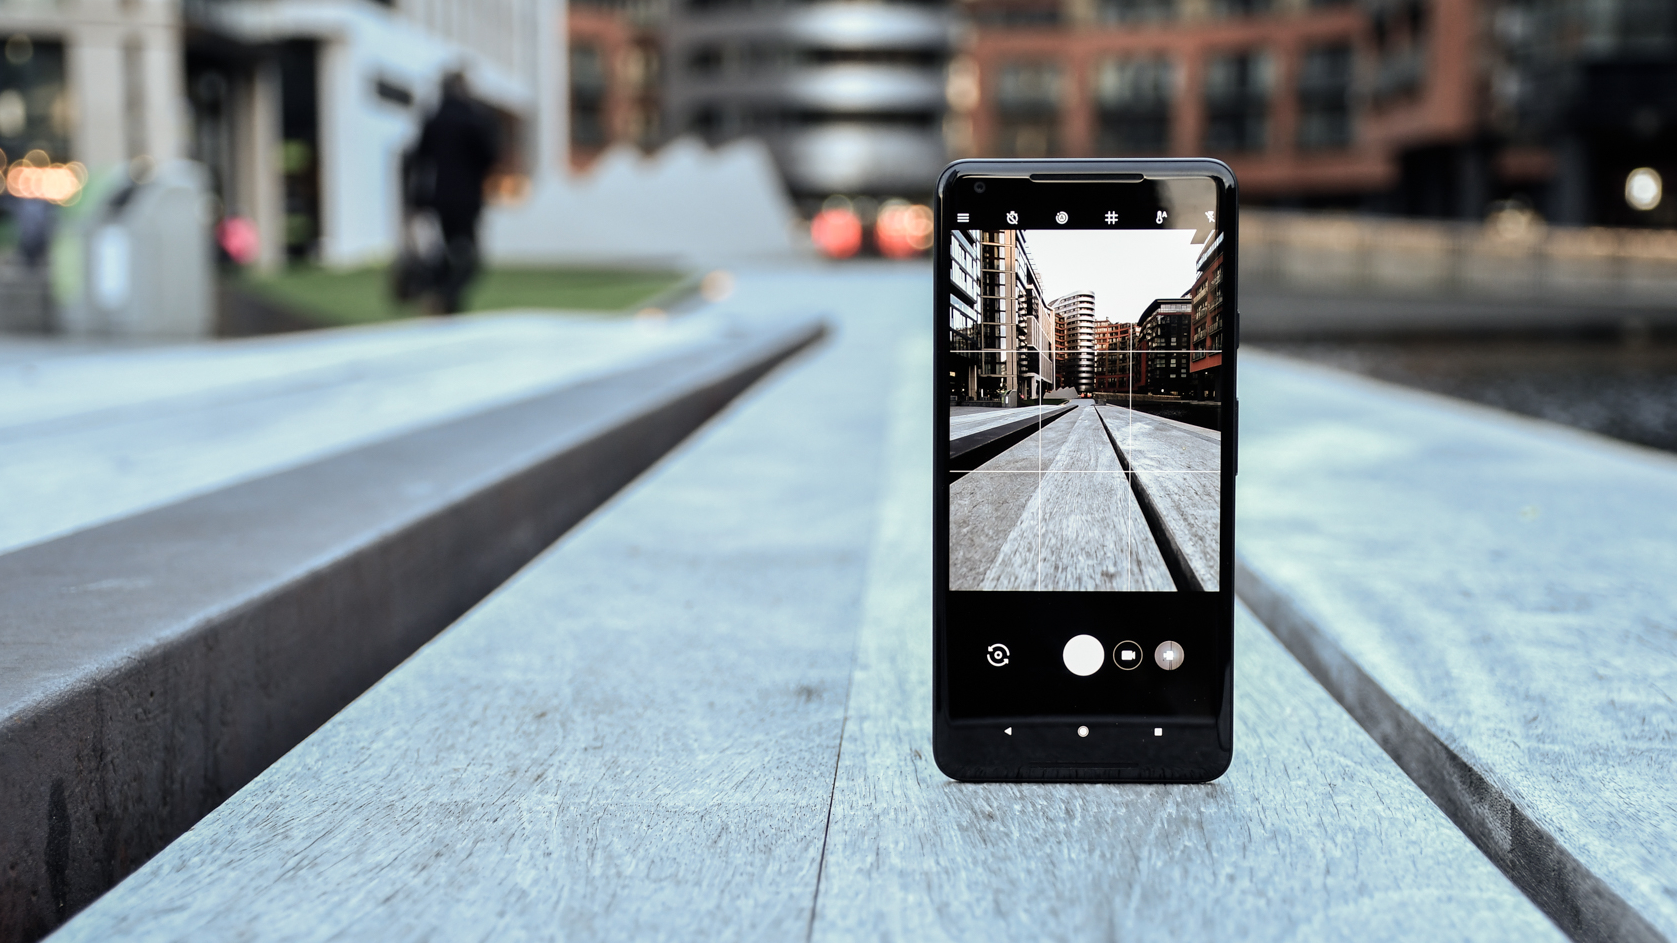 Google Pixel 3 XL leaked marketing video shows off slick new AR camera features